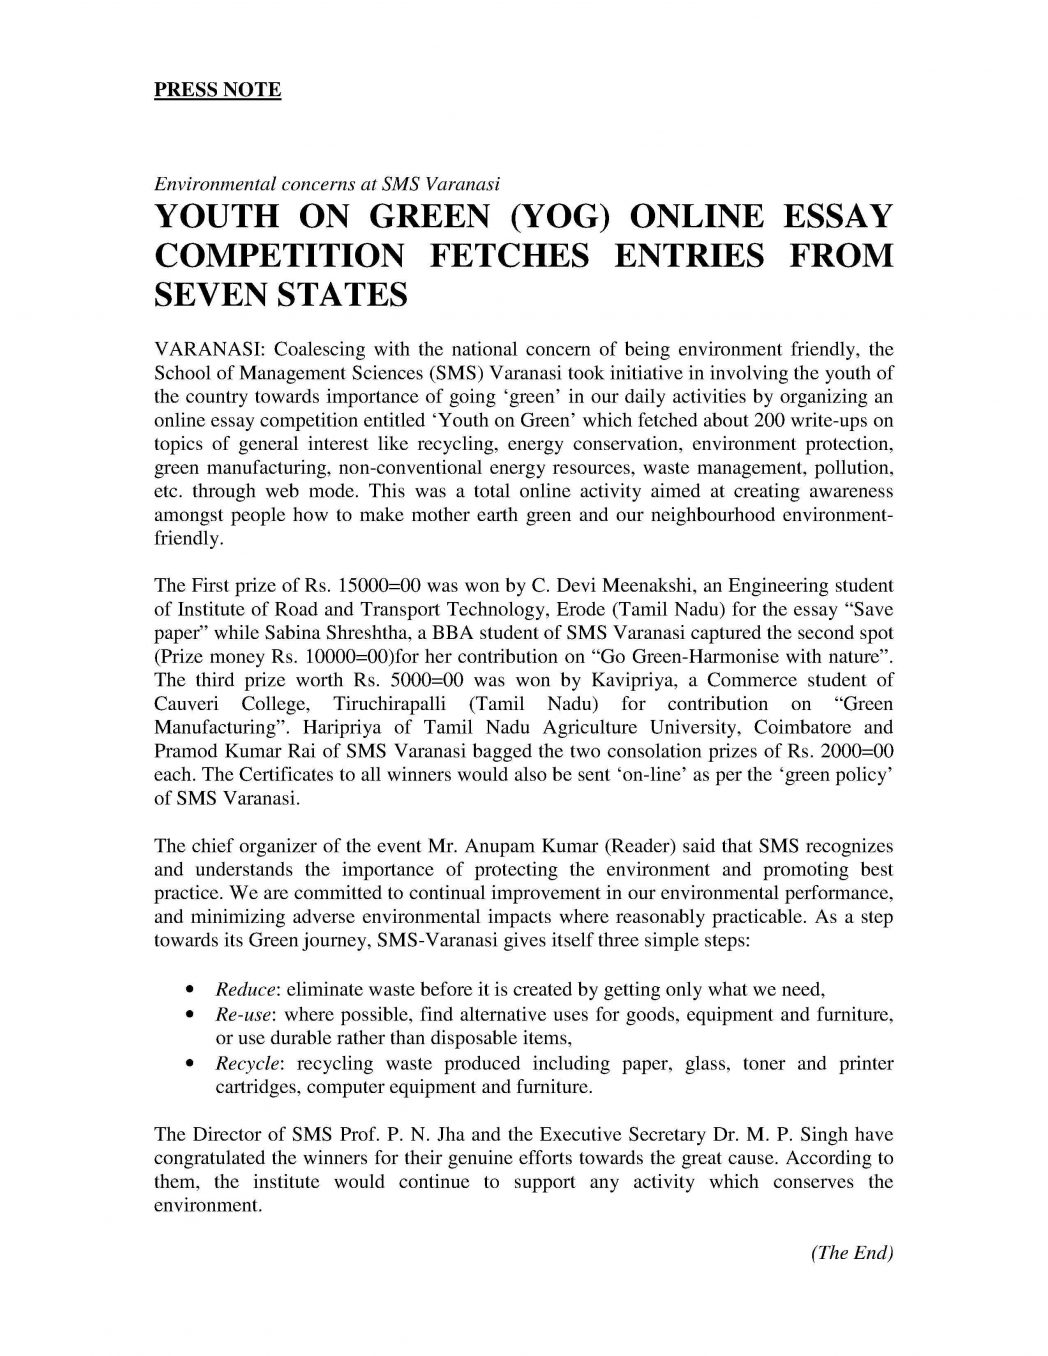 020 Best Essays For College Essay On Good Habits How Tot Application Online Yog Press Re About Yourself Examples Your Background Failure Prompt Off Hook 1048x1356 Example Amazing To Start An Analysis A Book Ways With Question Two Books Full